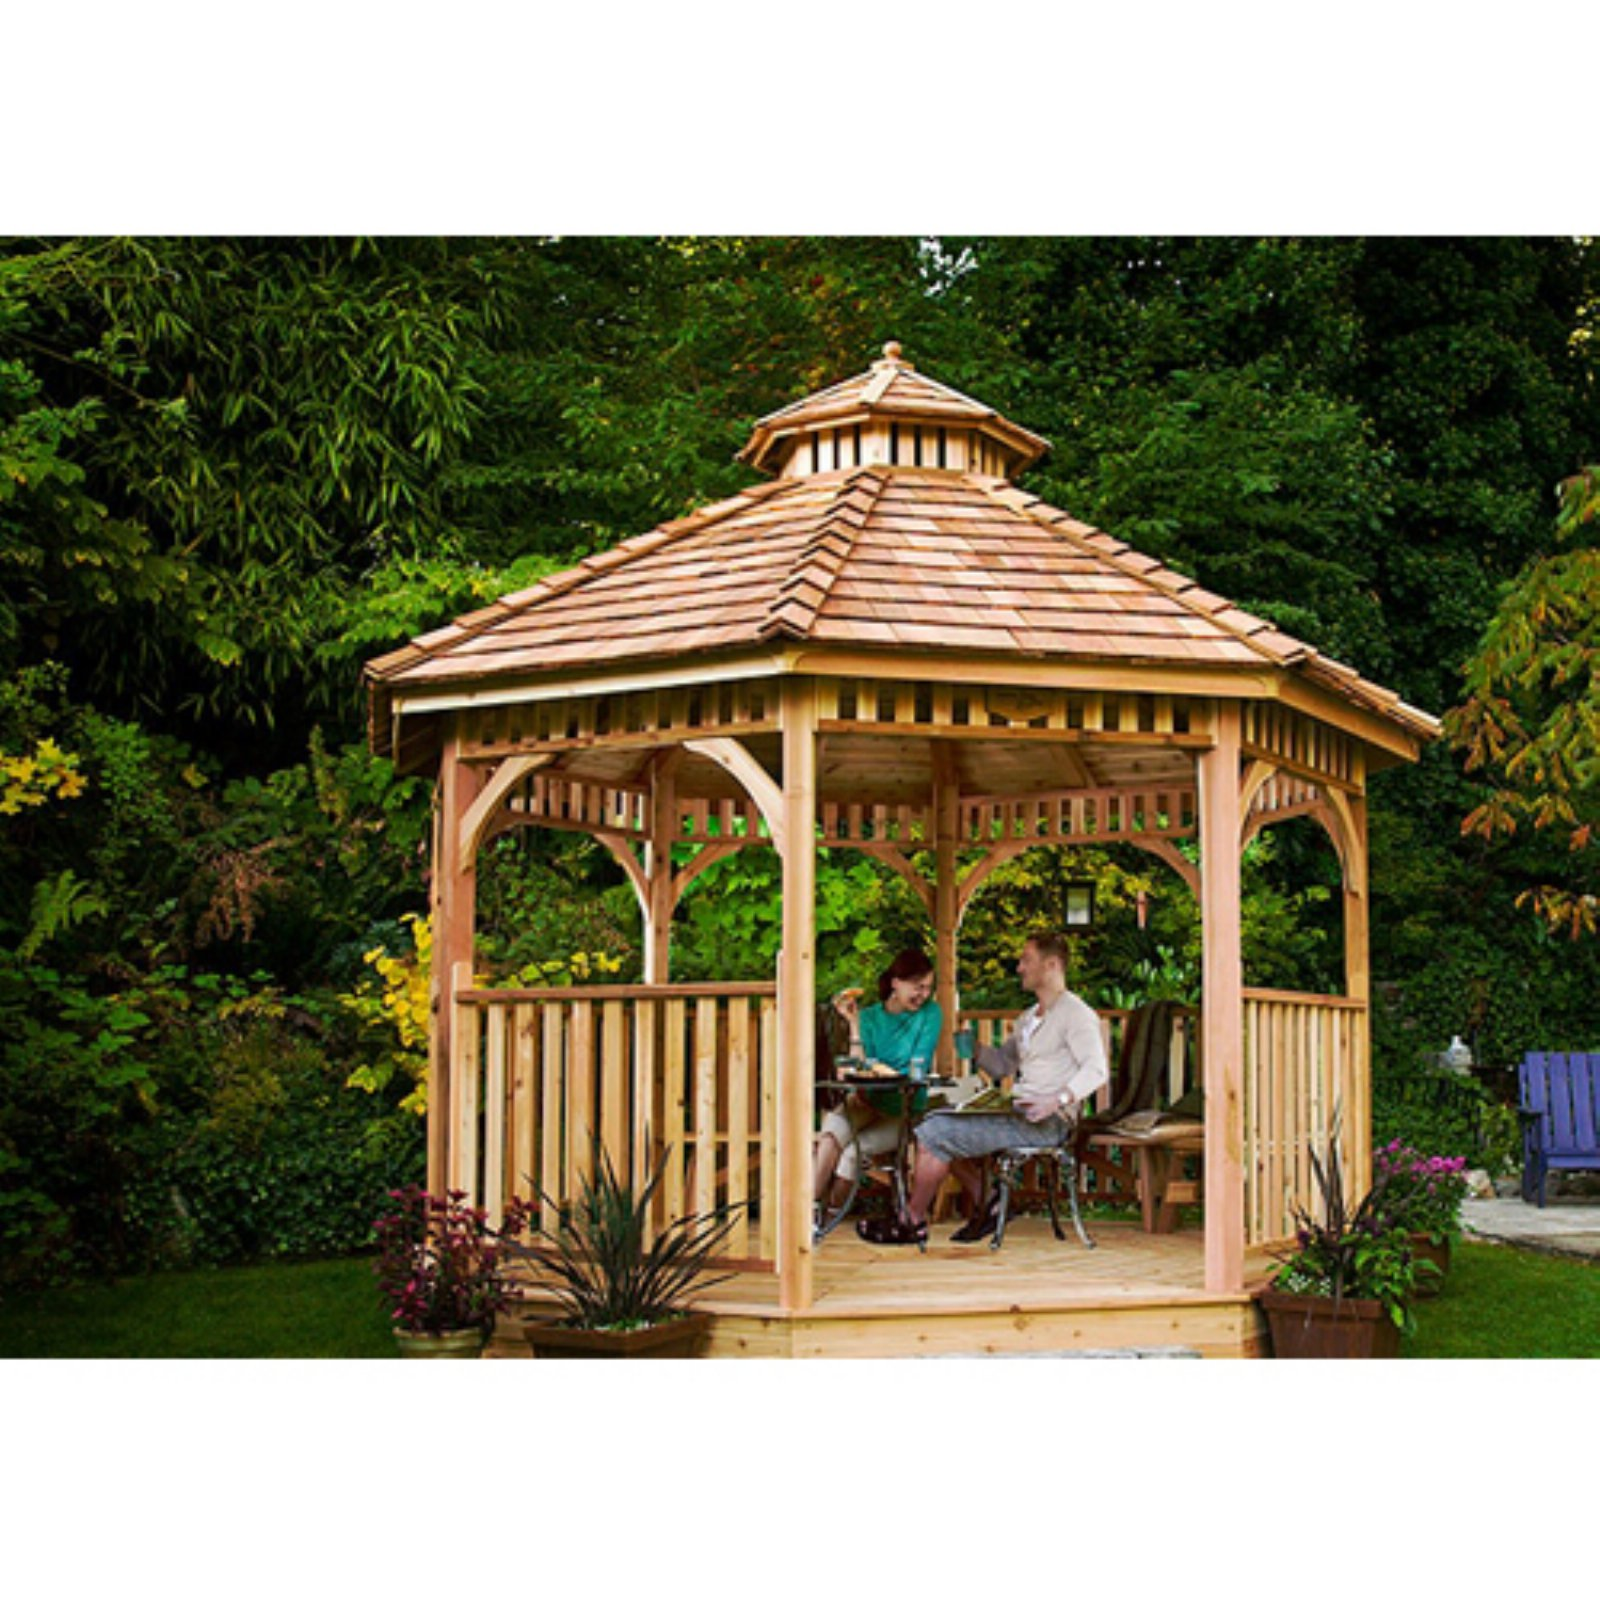 Outdoor Living Today Bayside 12 ft. Octagon Gazebo